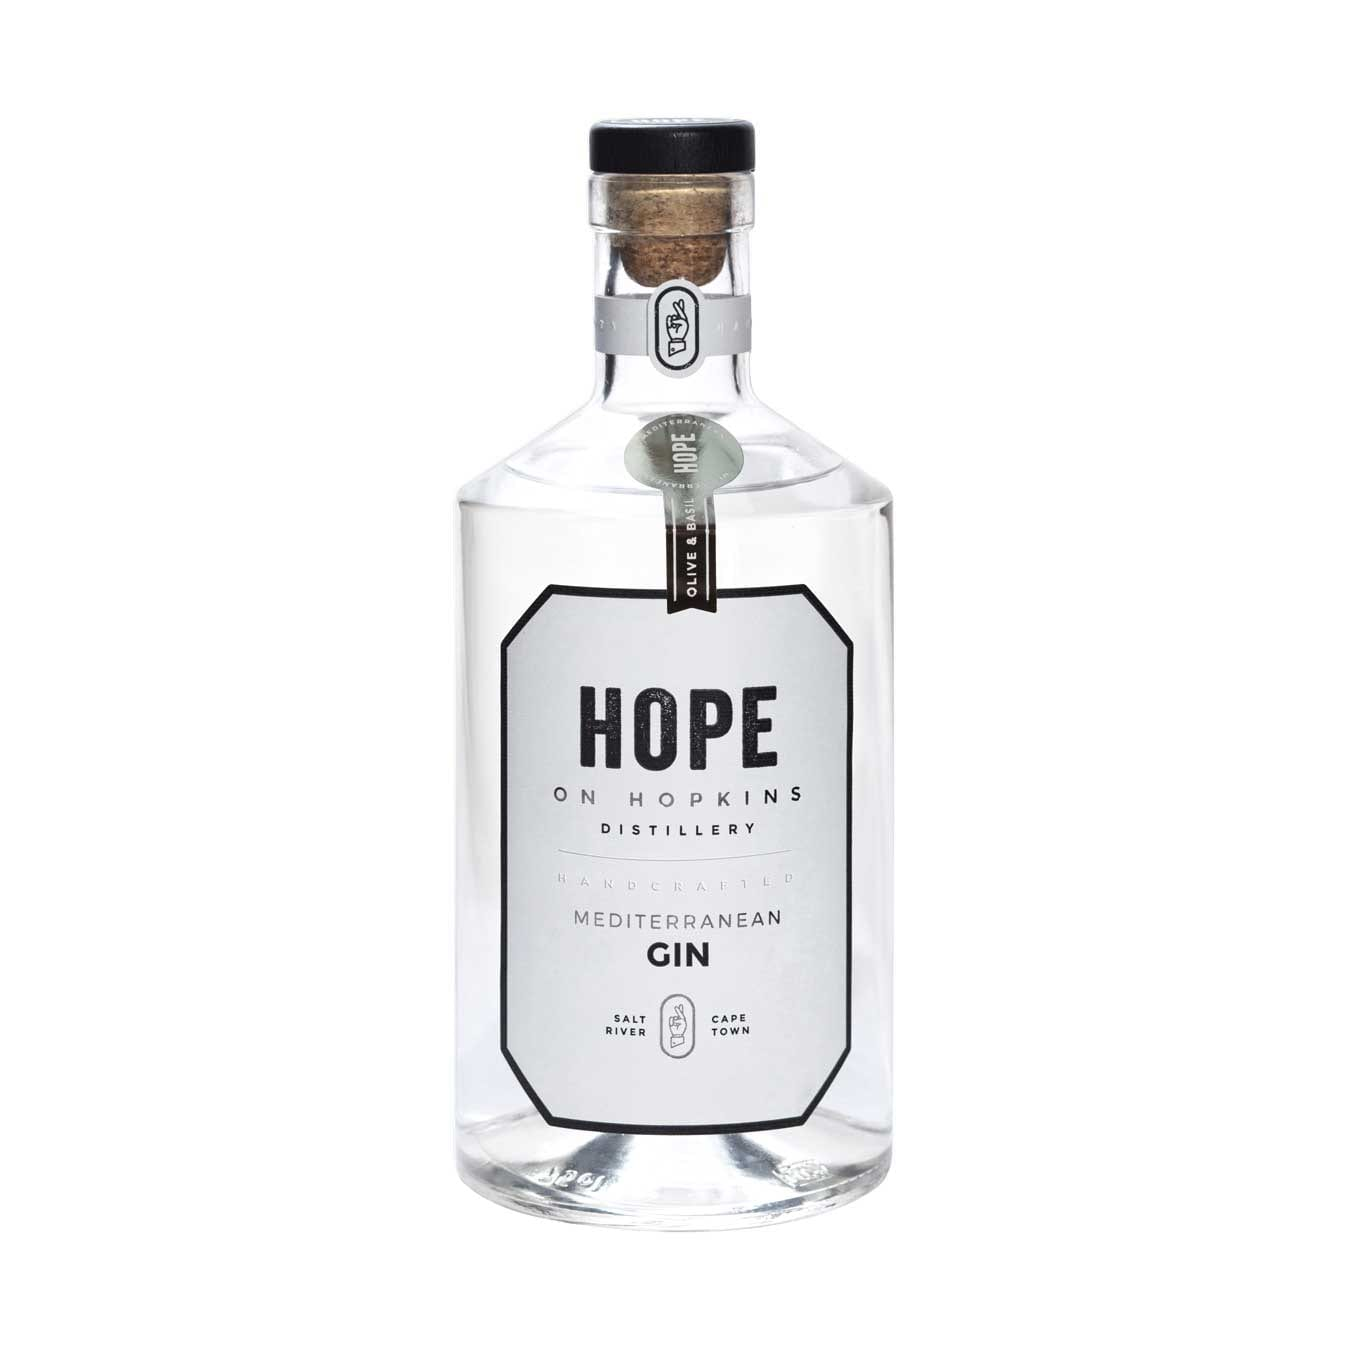 Hope on Hopkins Mediterranean Gin